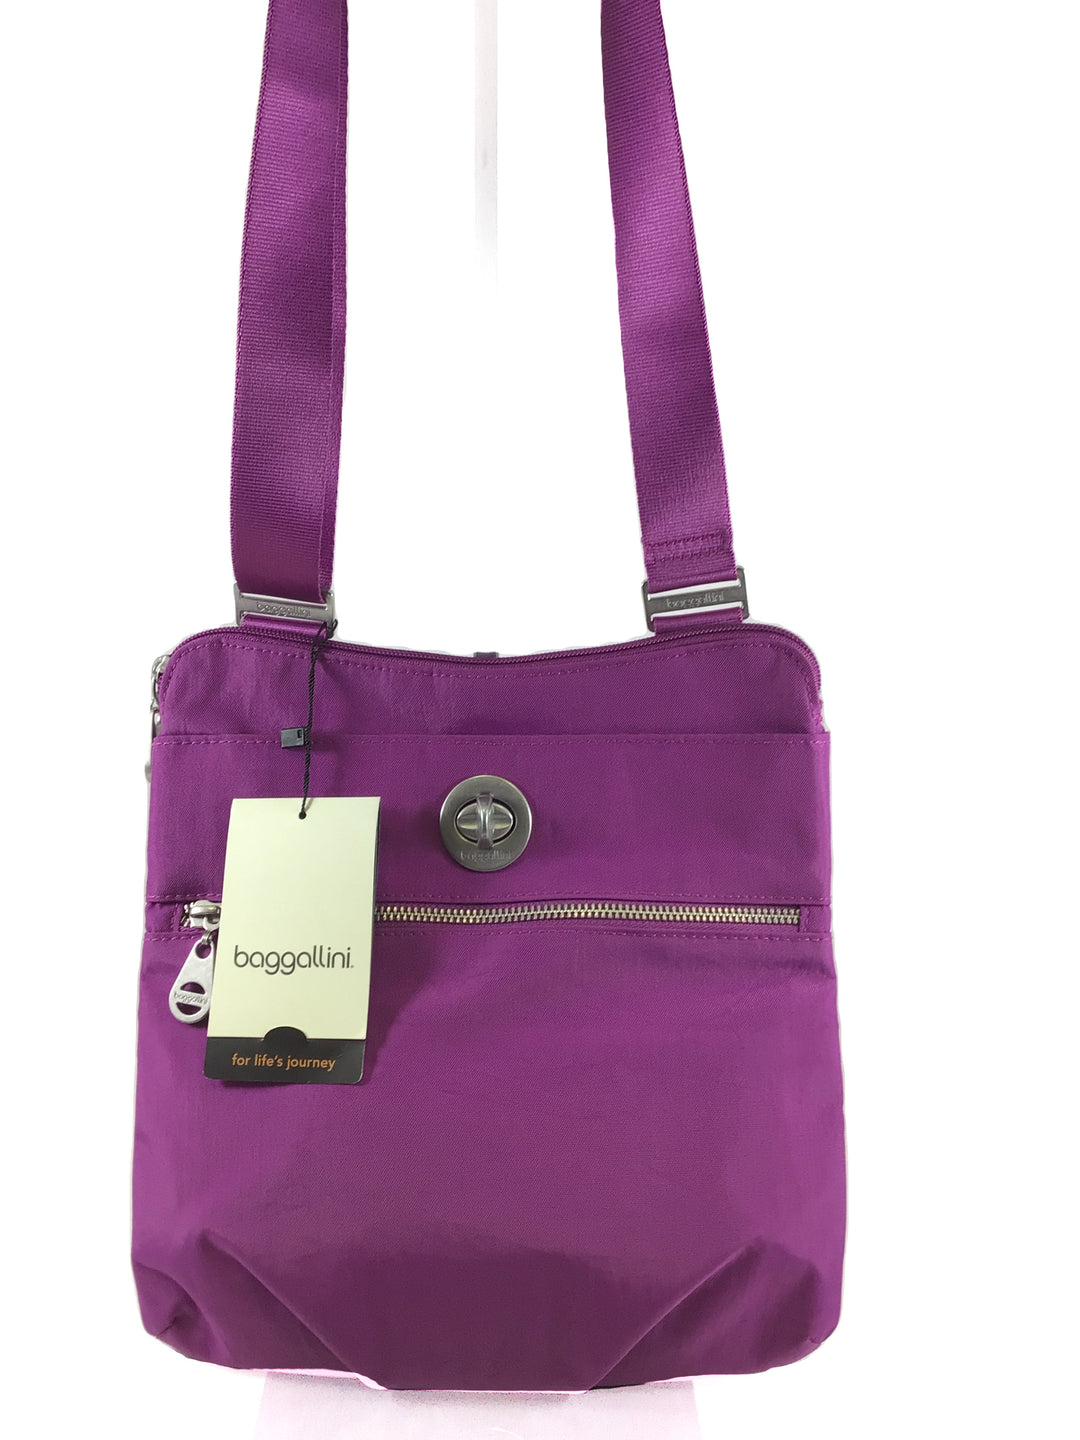 Primary Photo - BRAND: BAGGALLINI <BR>STYLE: HANDBAG <BR>COLOR: PURPLE <BR>SIZE: MEDIUM <BR>OTHER INFO: NEW! <BR>SKU: 213-21394-39744